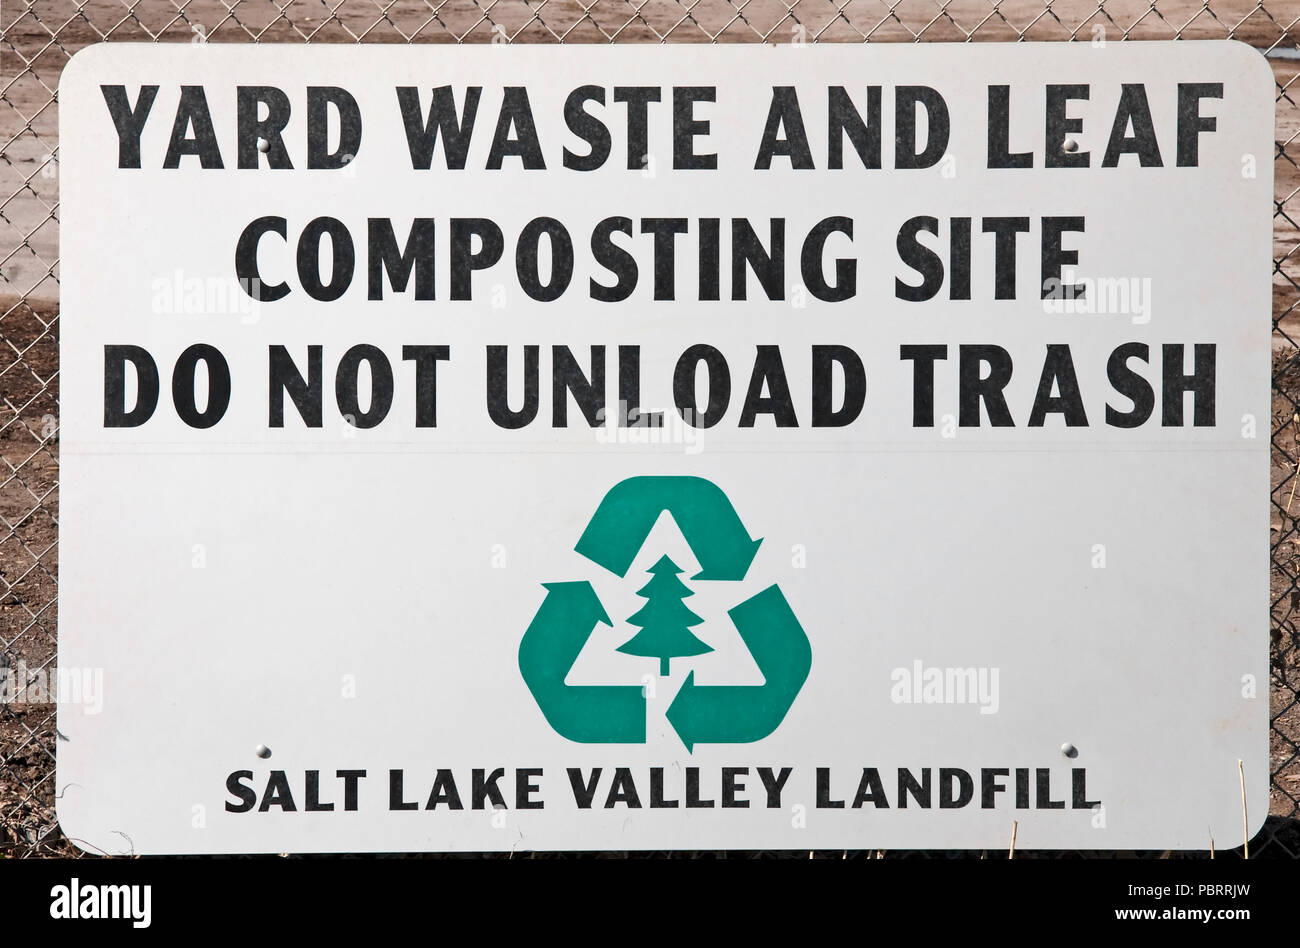 A sign indicating this is a Yard Waste and Leaf Composting Site at the Salt Lake City Landfill in Utah, USA. The landfill is doing its' part to help o - Stock Image